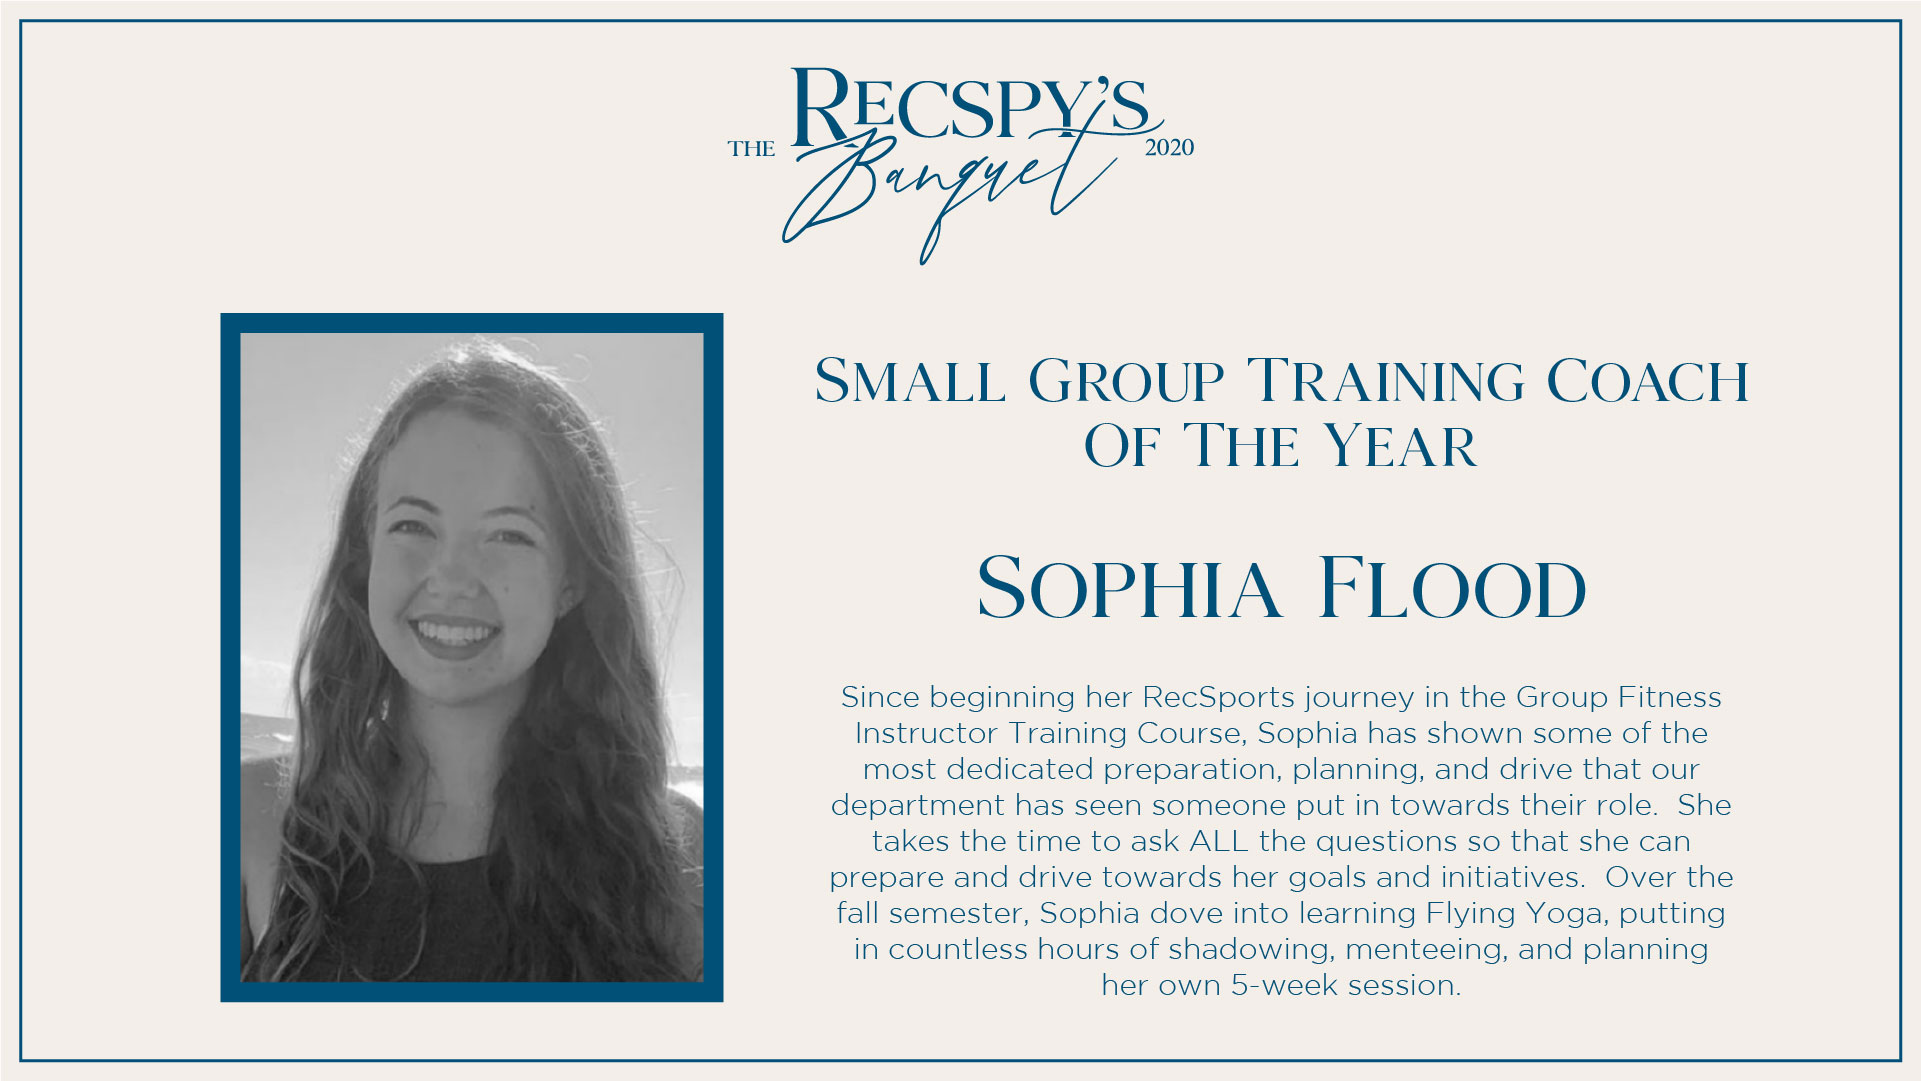 Sophia Flood: Small Group Training Coach of the Year